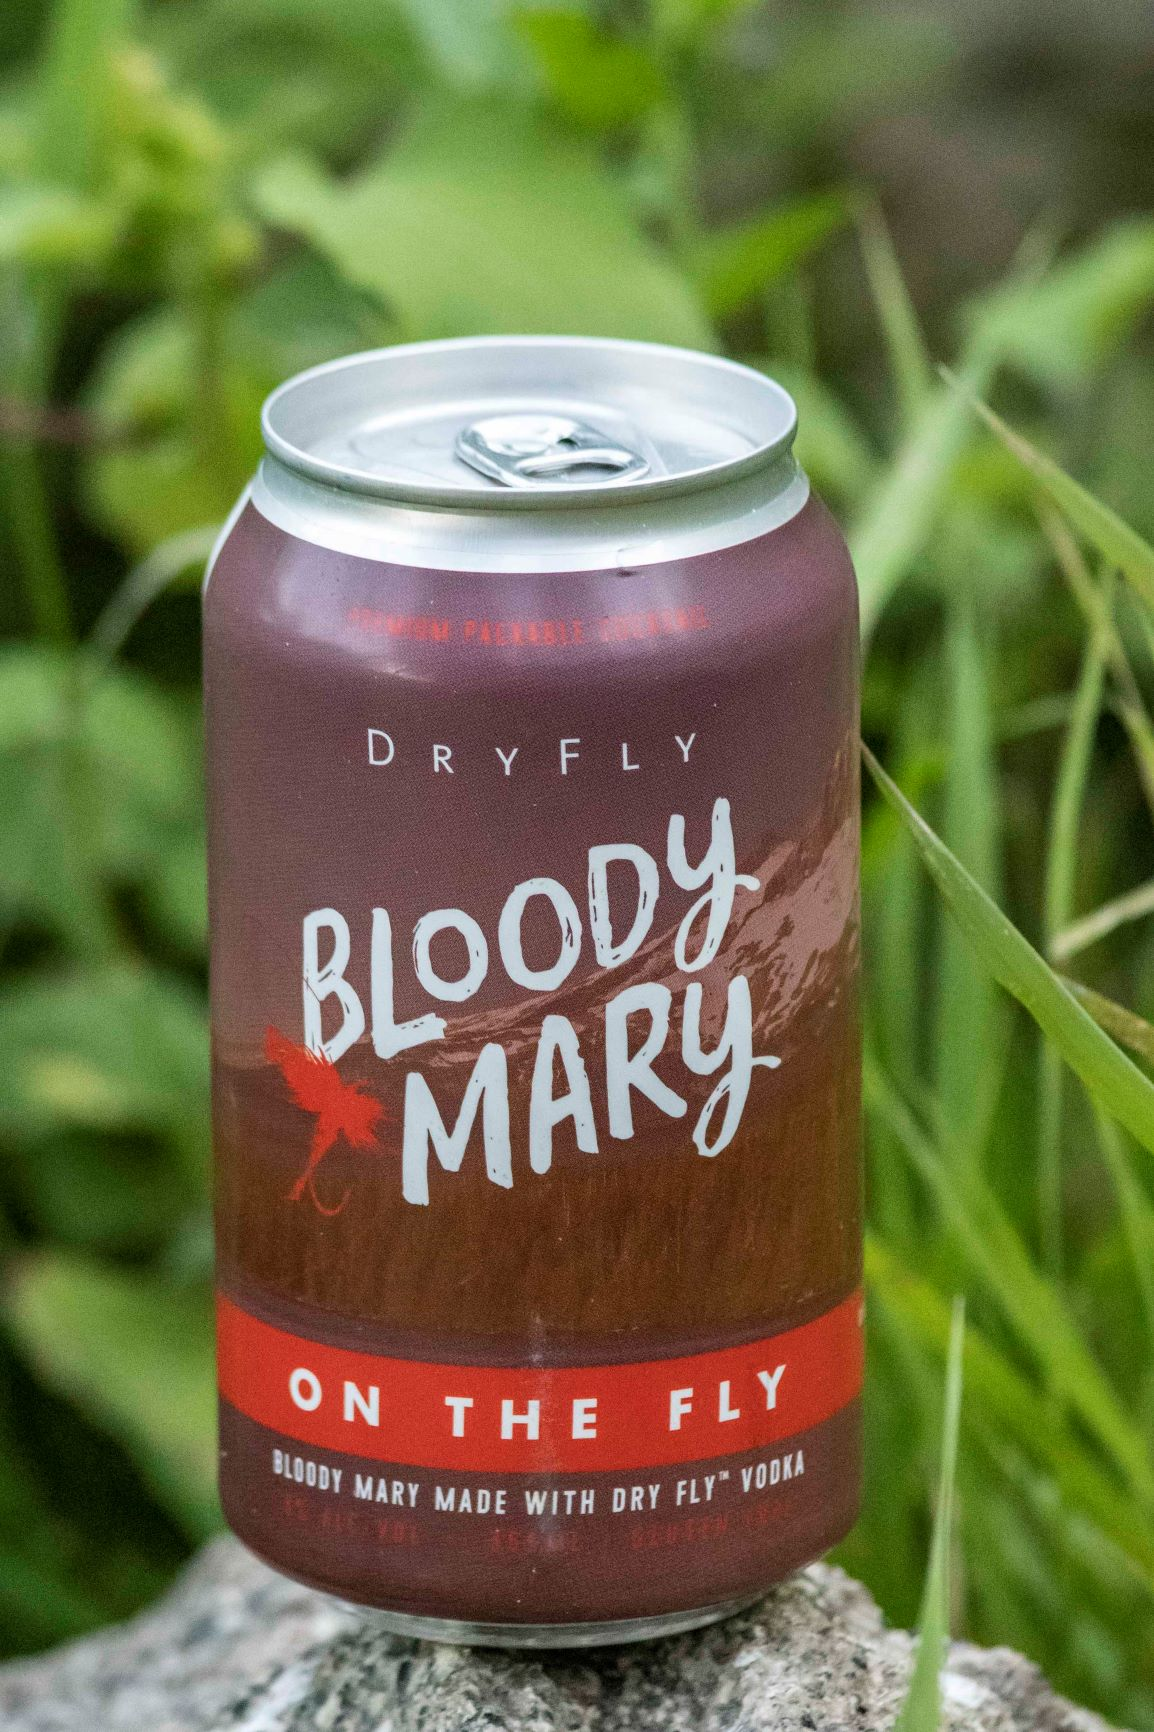 Bloody Mary canned cocktail from Dry Fly.